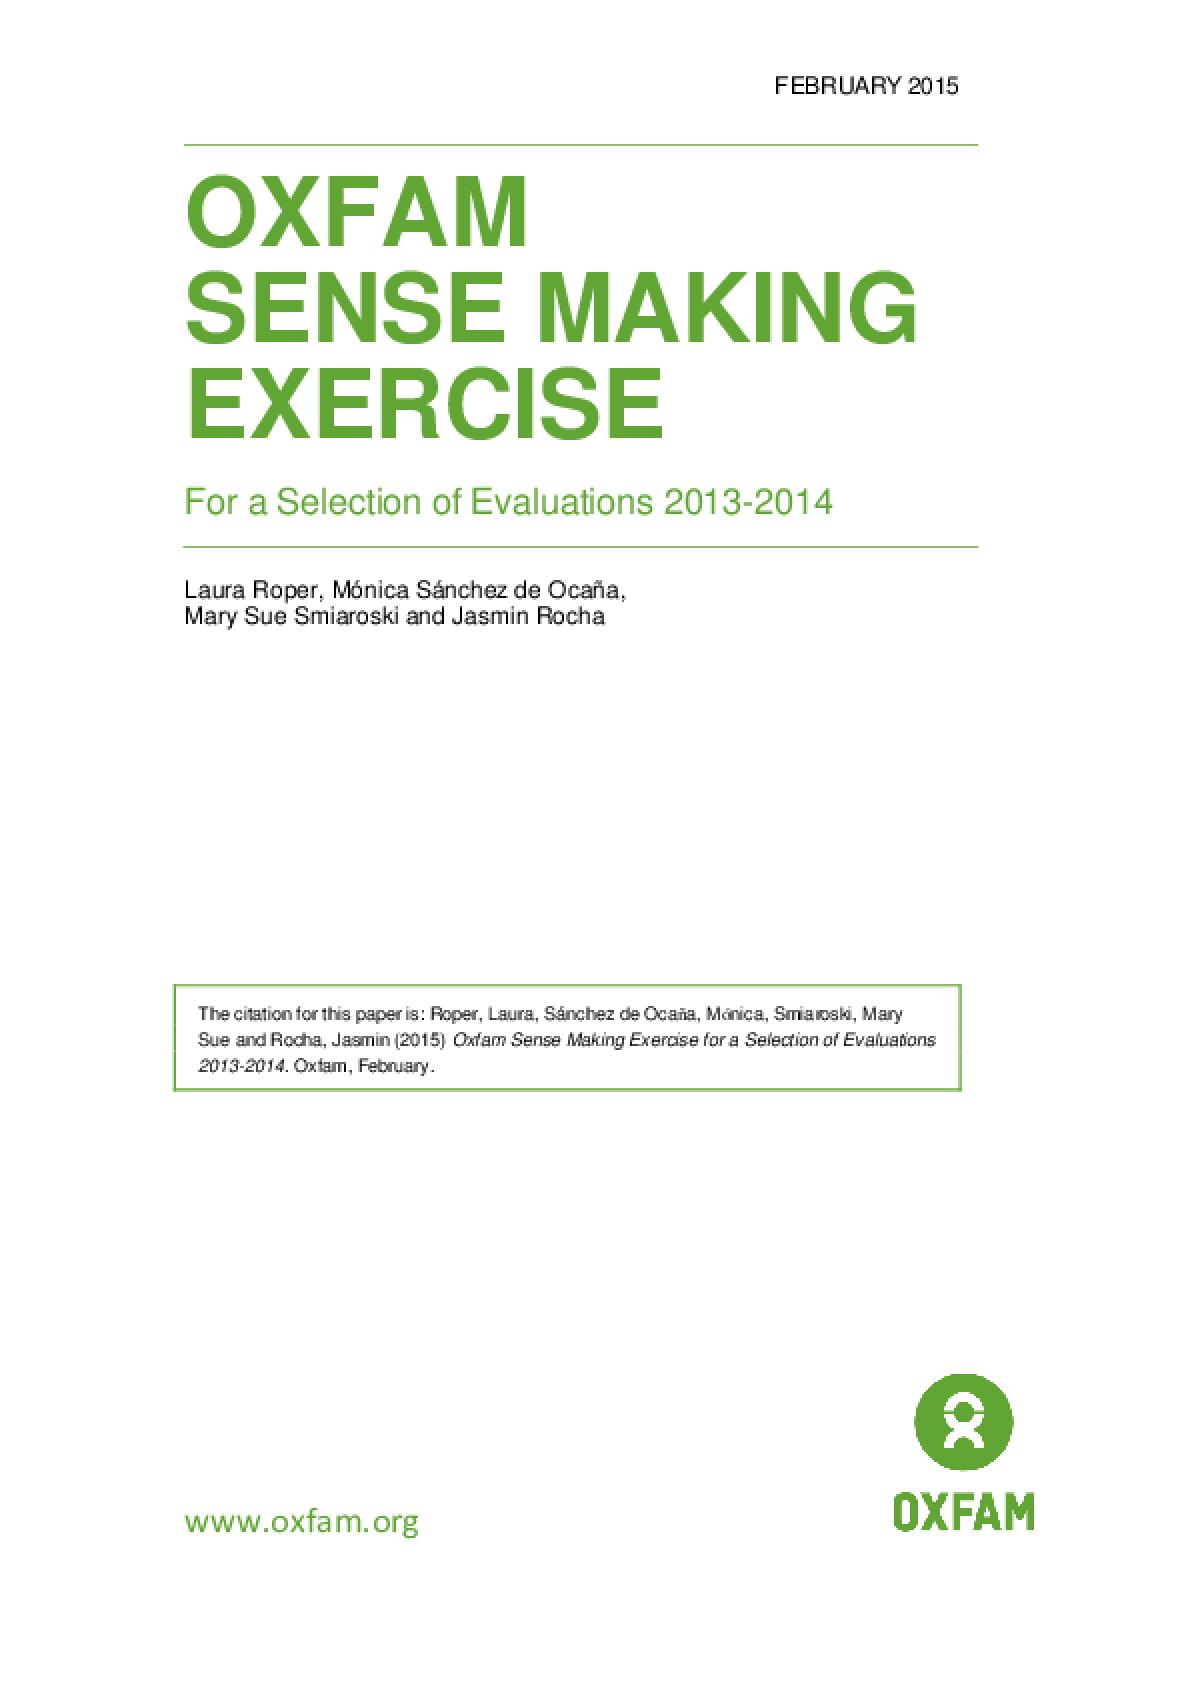 Oxfam Sense Making Exercise for a Selection of Evaluations 2013-2014